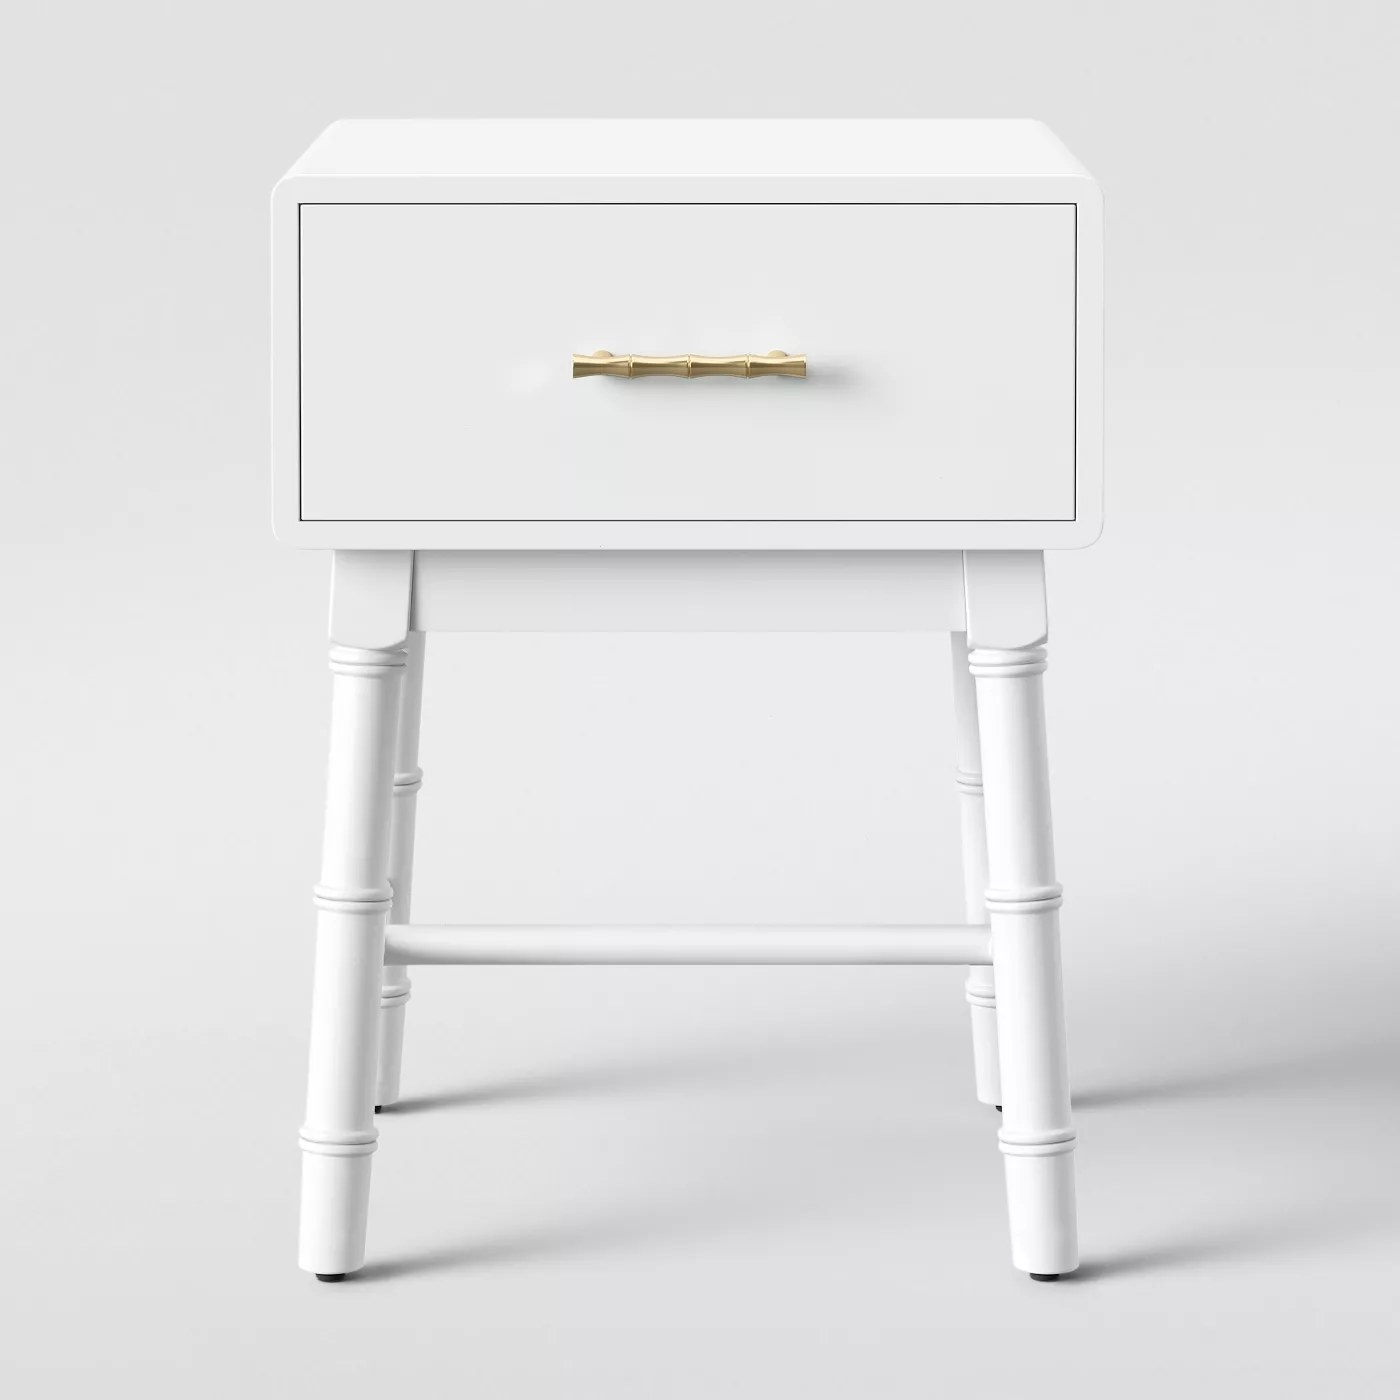 The blue nightstand with a gold handle